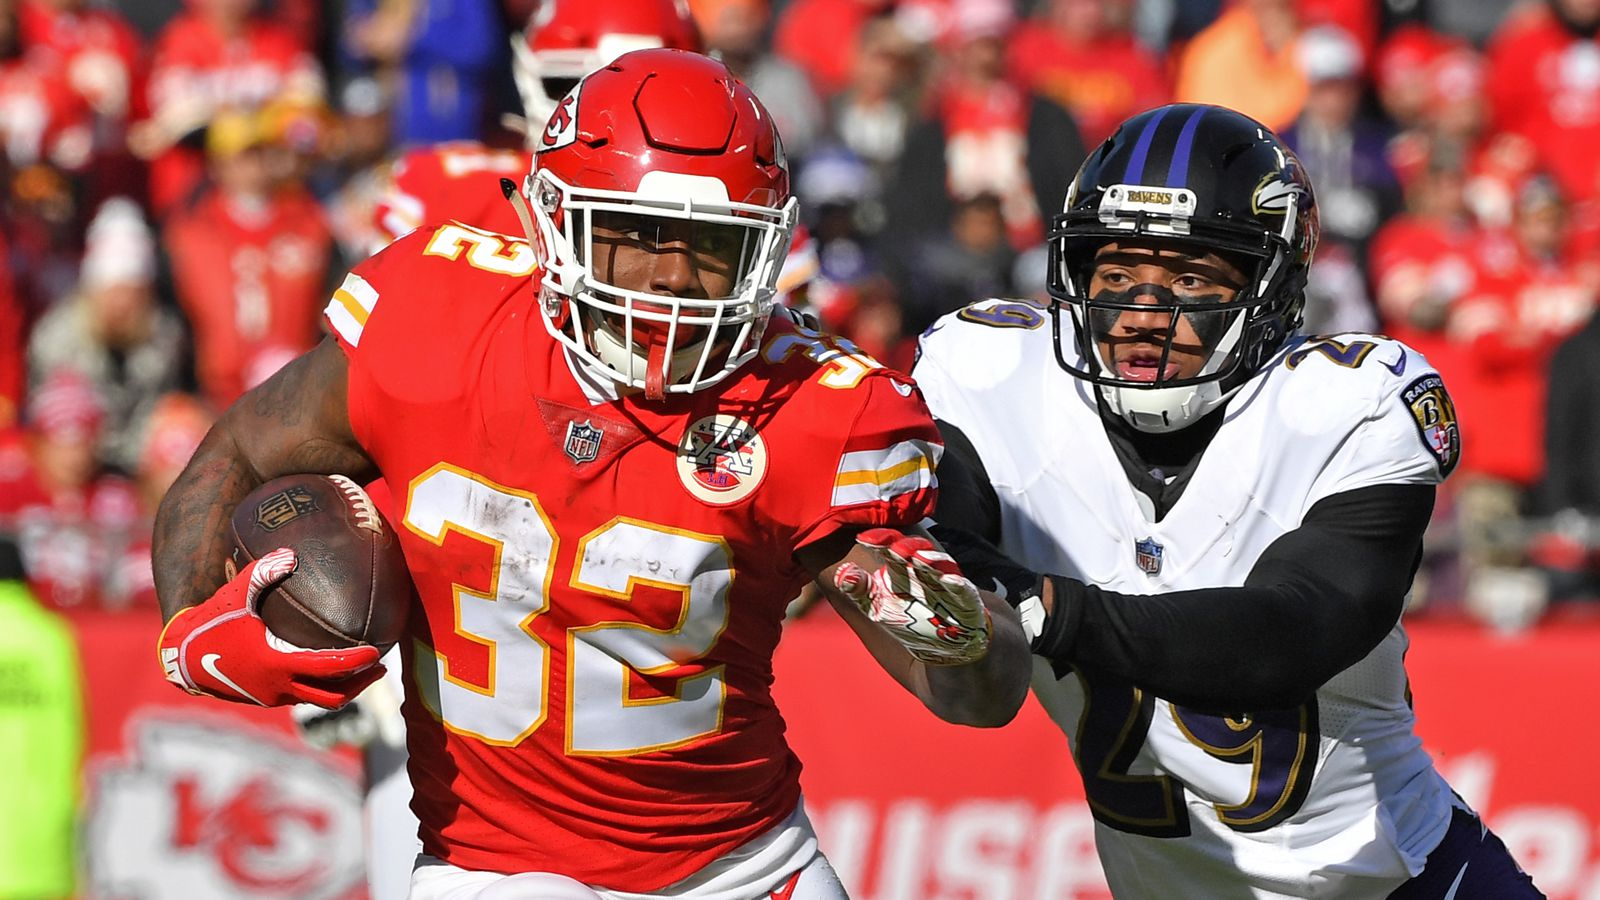 Chiefs-Patriots: Spencer Ware led all Chiefs running backs in playing time